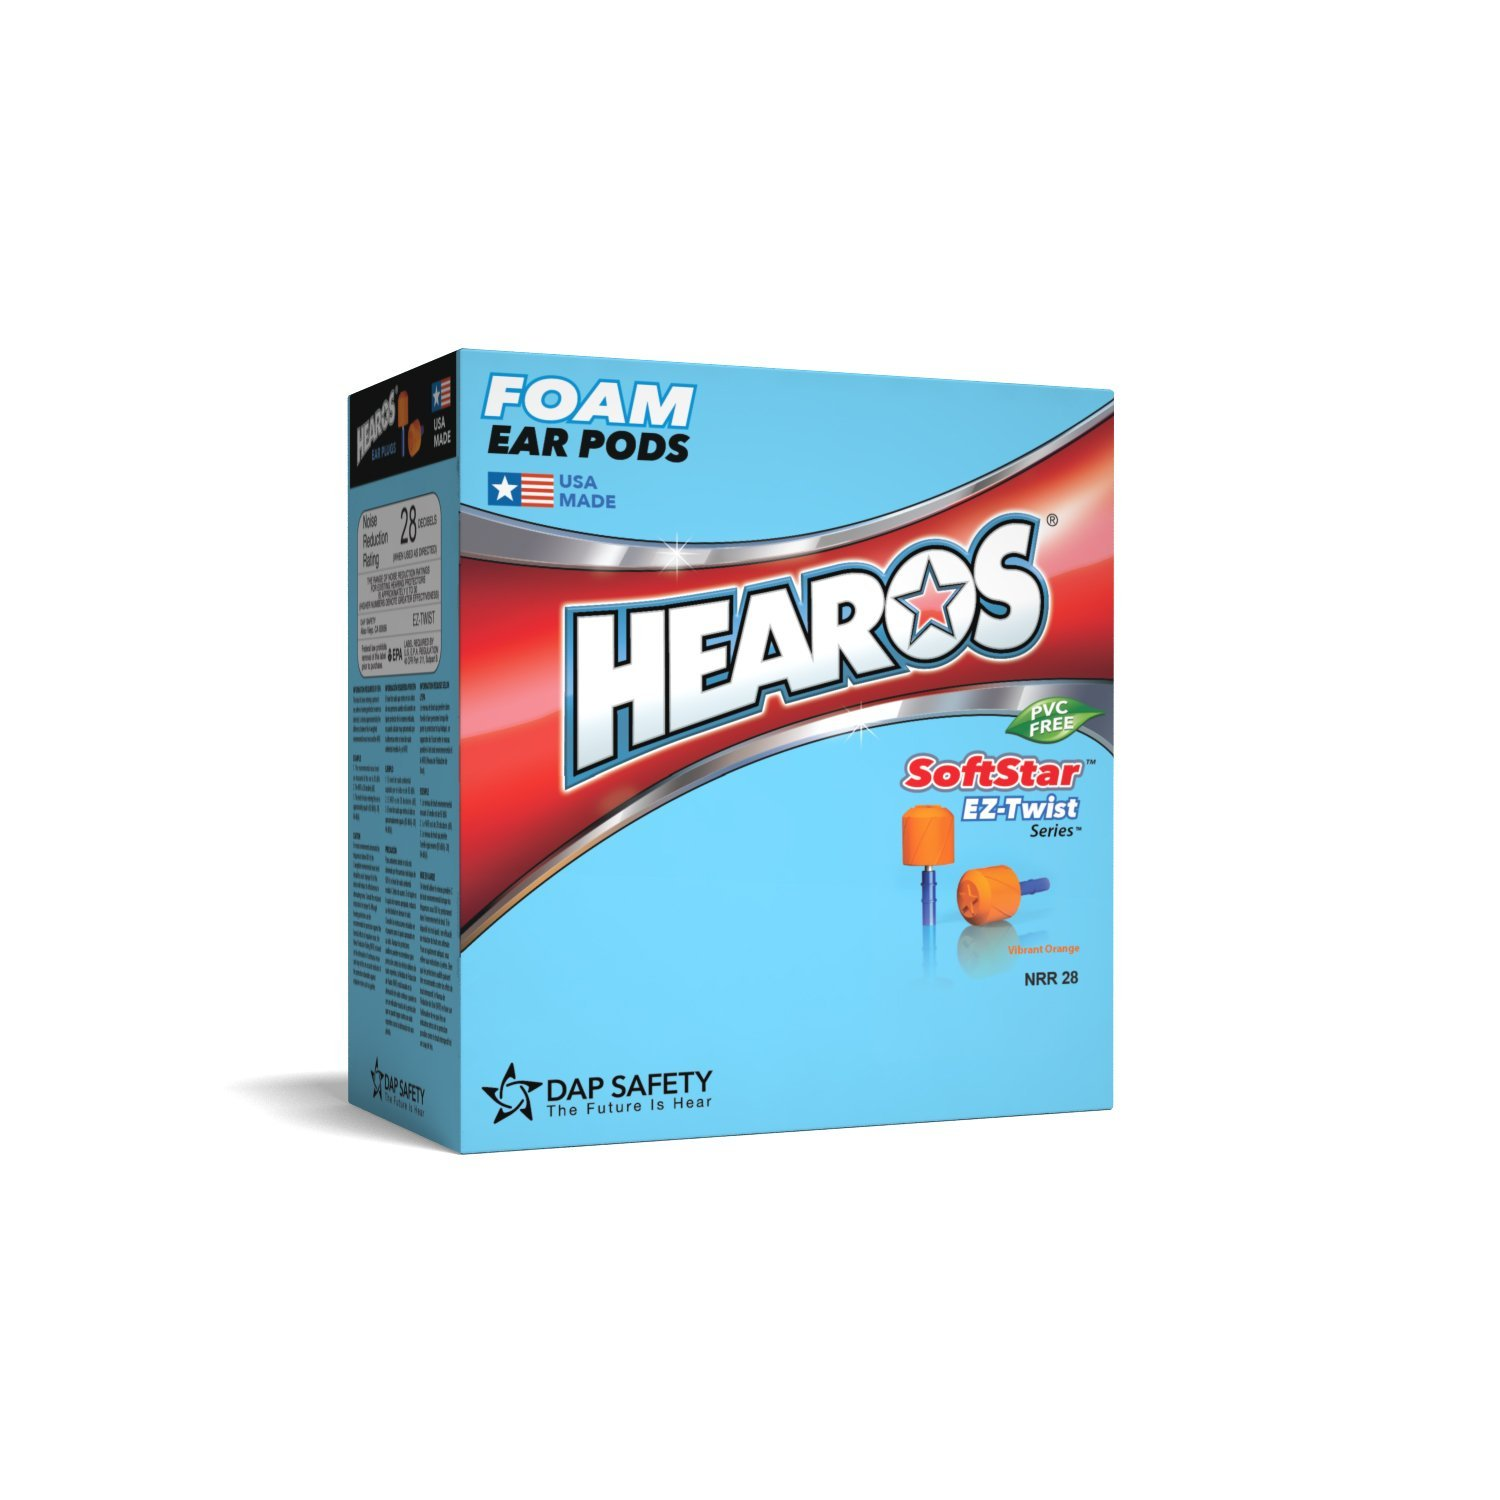 HEAROS 7312 SoftStar Series Ear Pods with EZ Twist Grip Box of 100